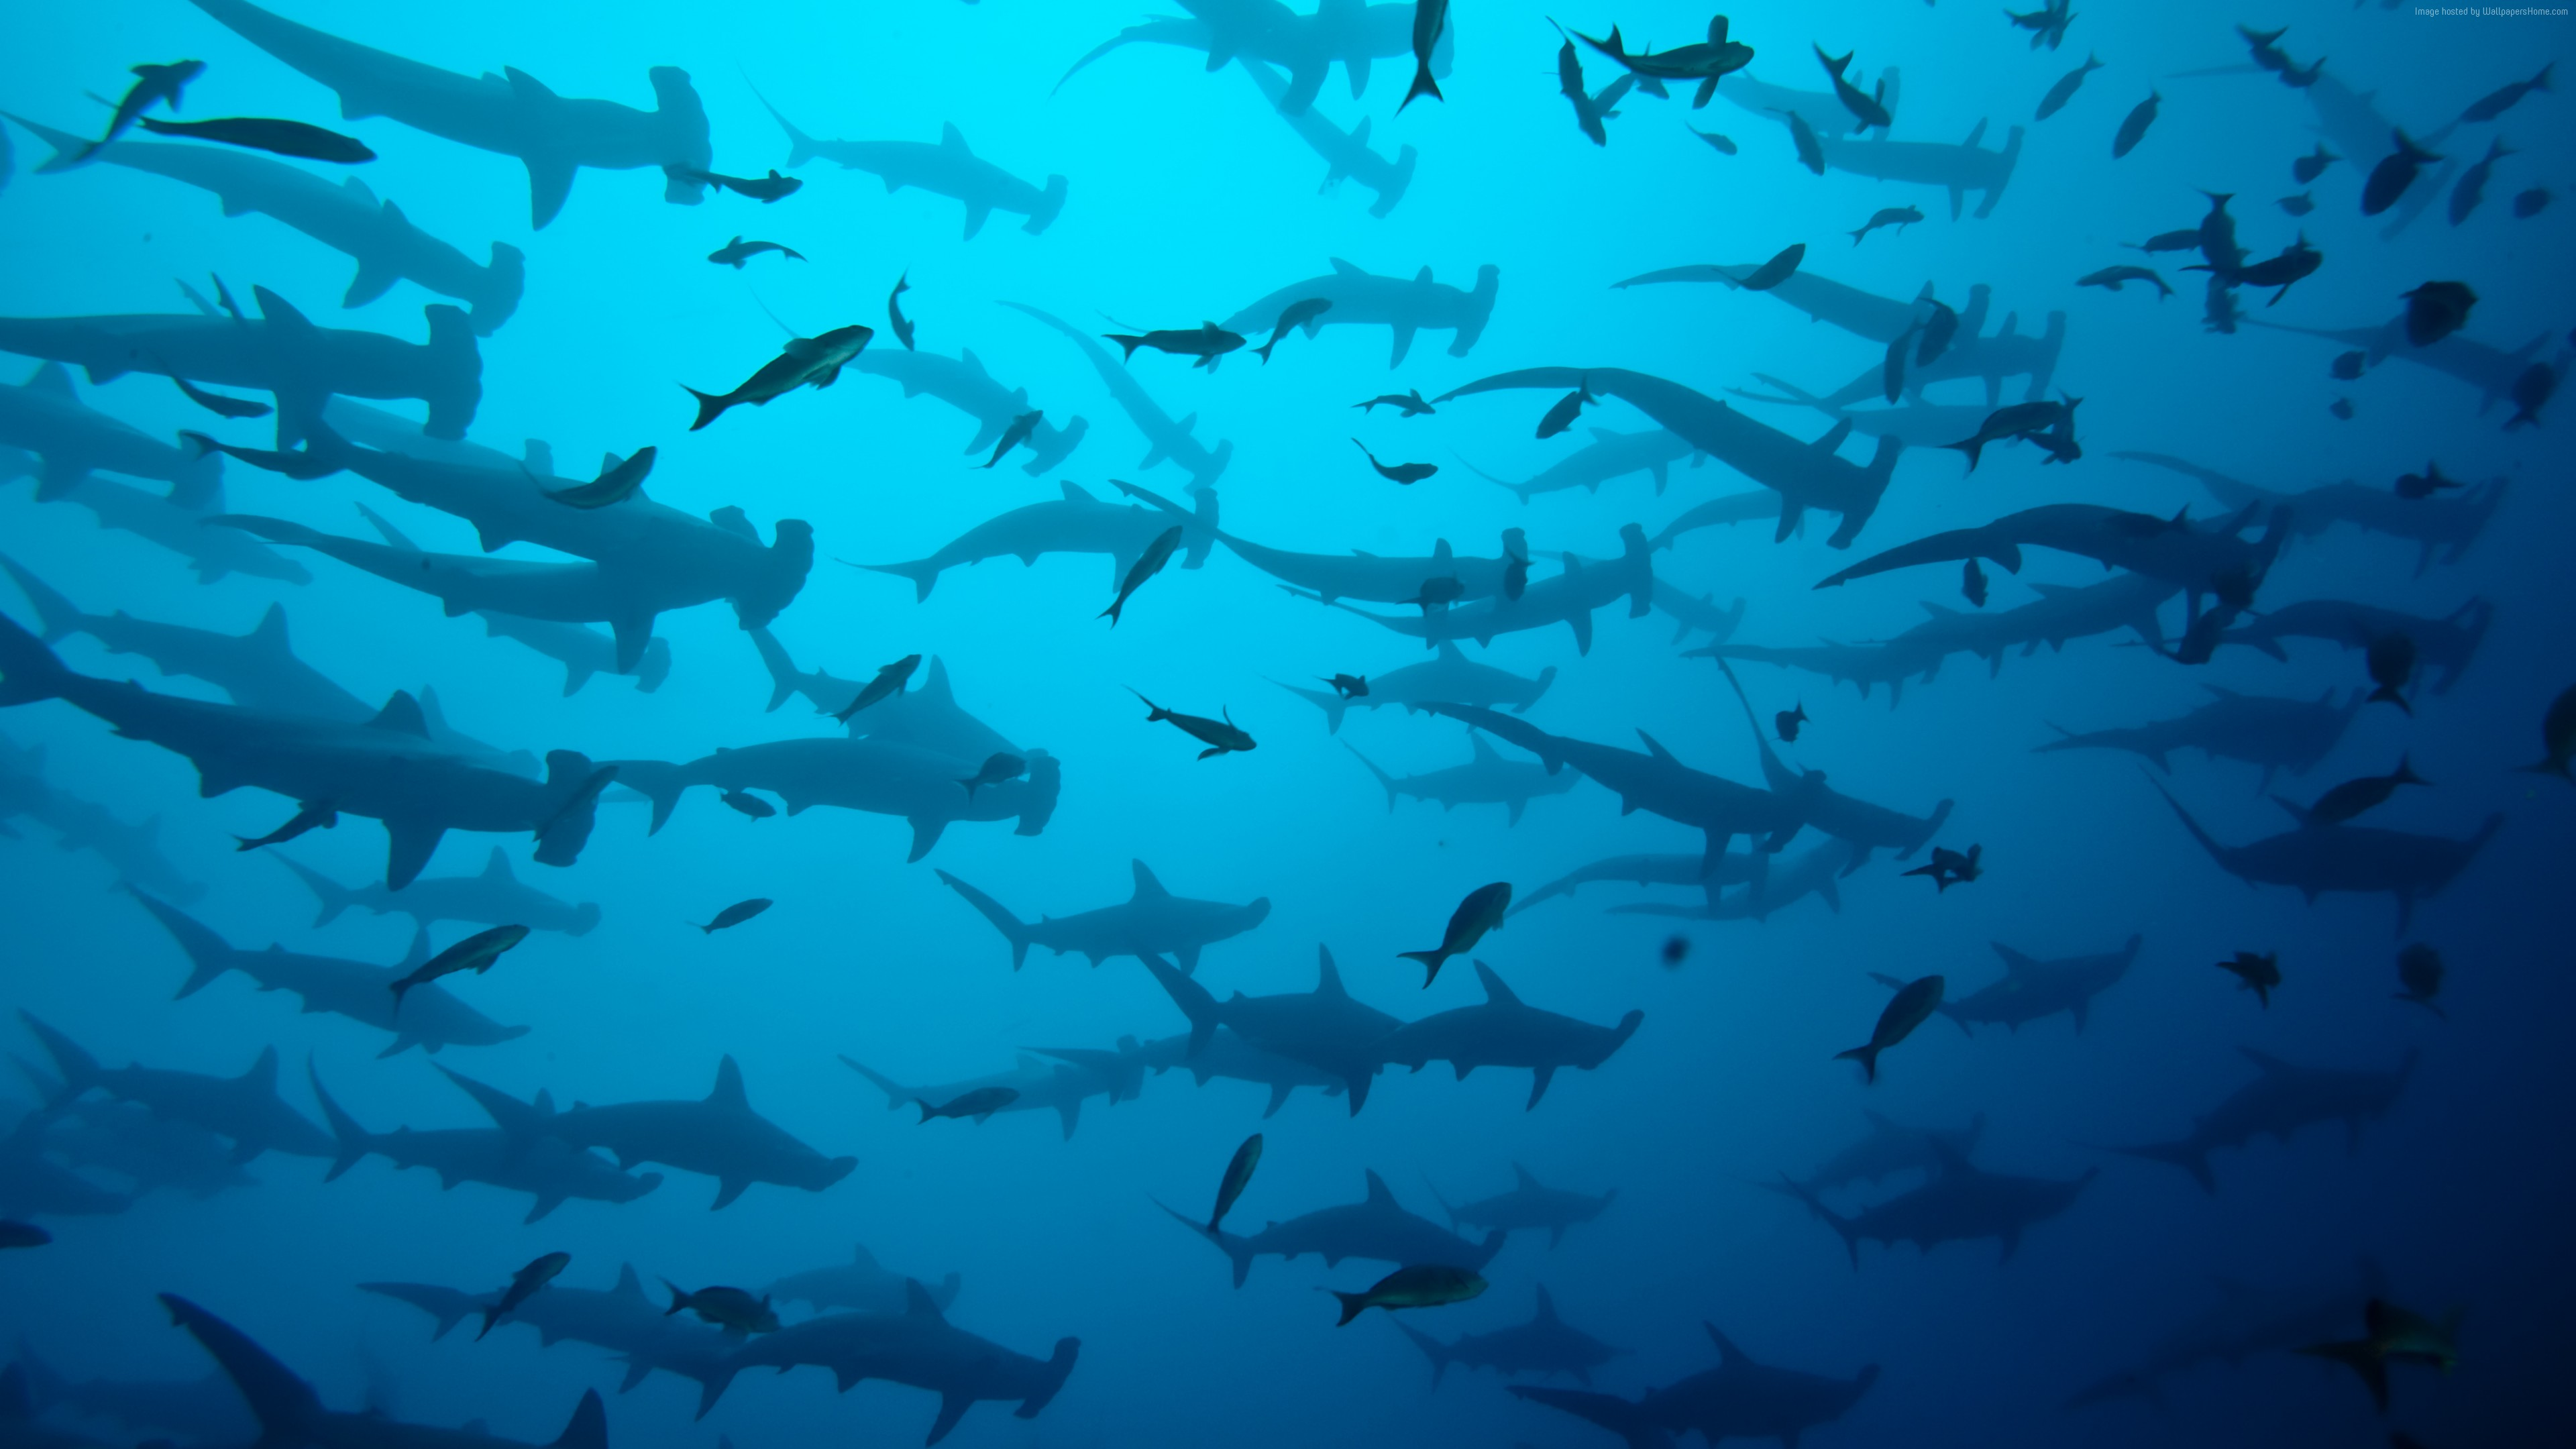 Wallpaper 5k, 4k, Cocos Island, Costa Rica, underwater, diving, sharks, OS